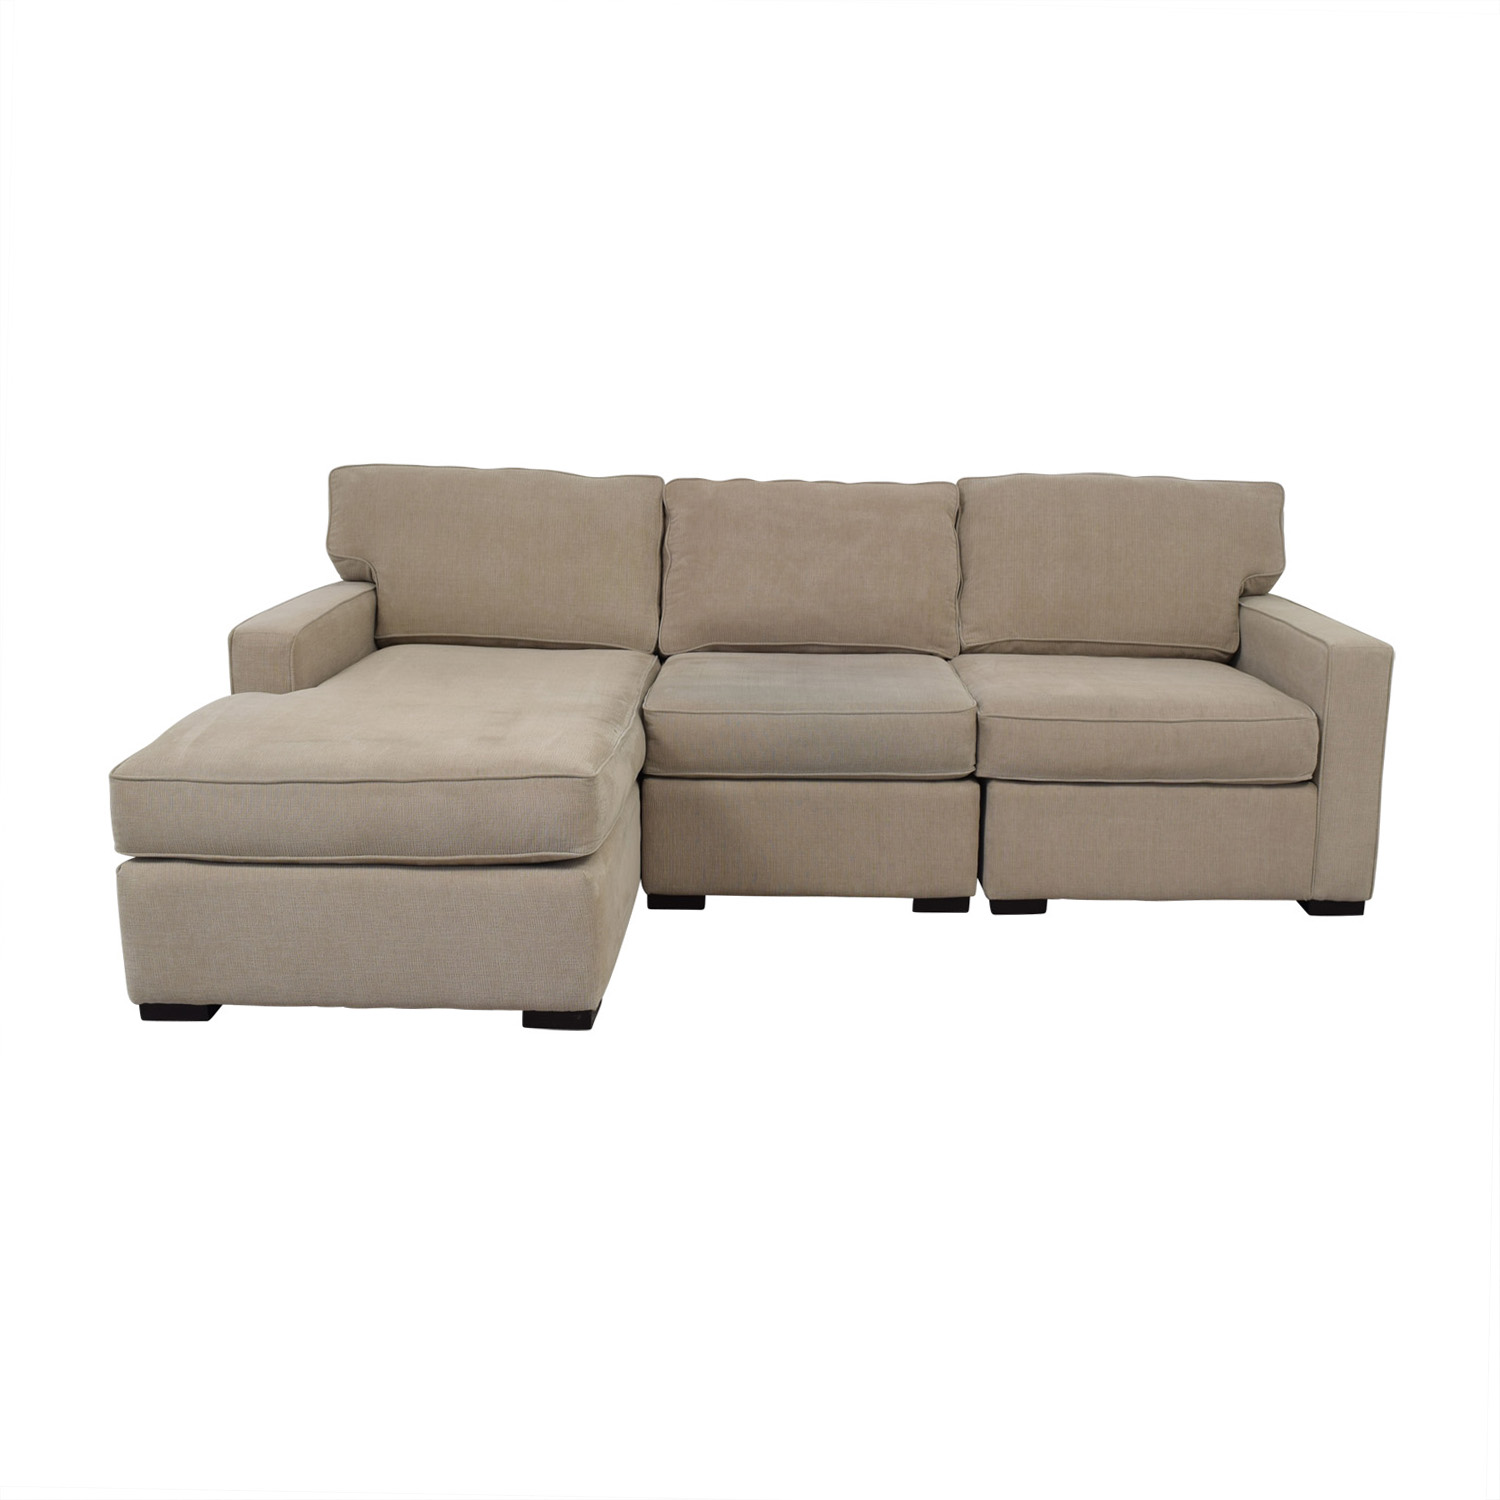 Macy's Beige Chaise Sectional / Sofas